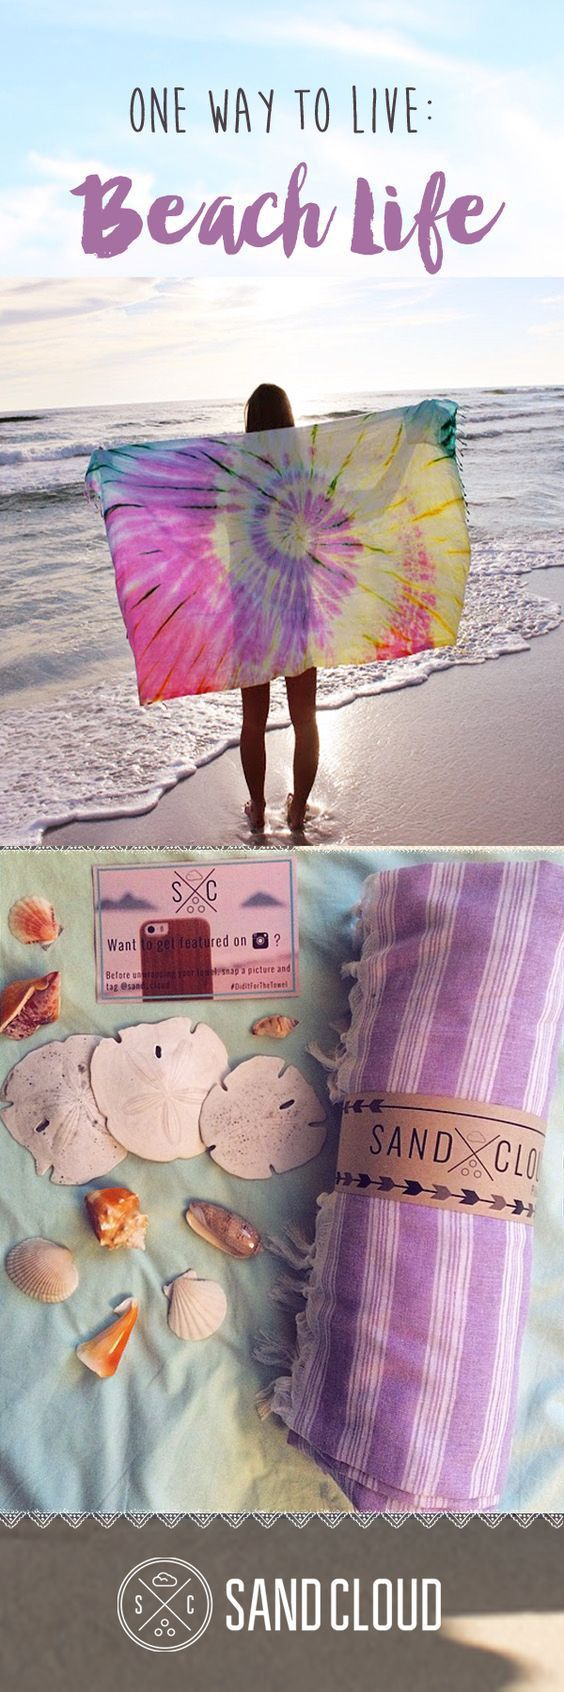 """Omg Do You Live For The Beach? I Am Obsessed With This Towel! I Even Use It As A Blanket, It's so soft! <3 Everyone Is Always Asking Where I Got It So I Figured I'd Share! Shoutout to My Mate For Taking This Awesome Pic of Me!     """"Discover the latest beach styles photographed on some of the most beautiful beaches in the world!"""":"""